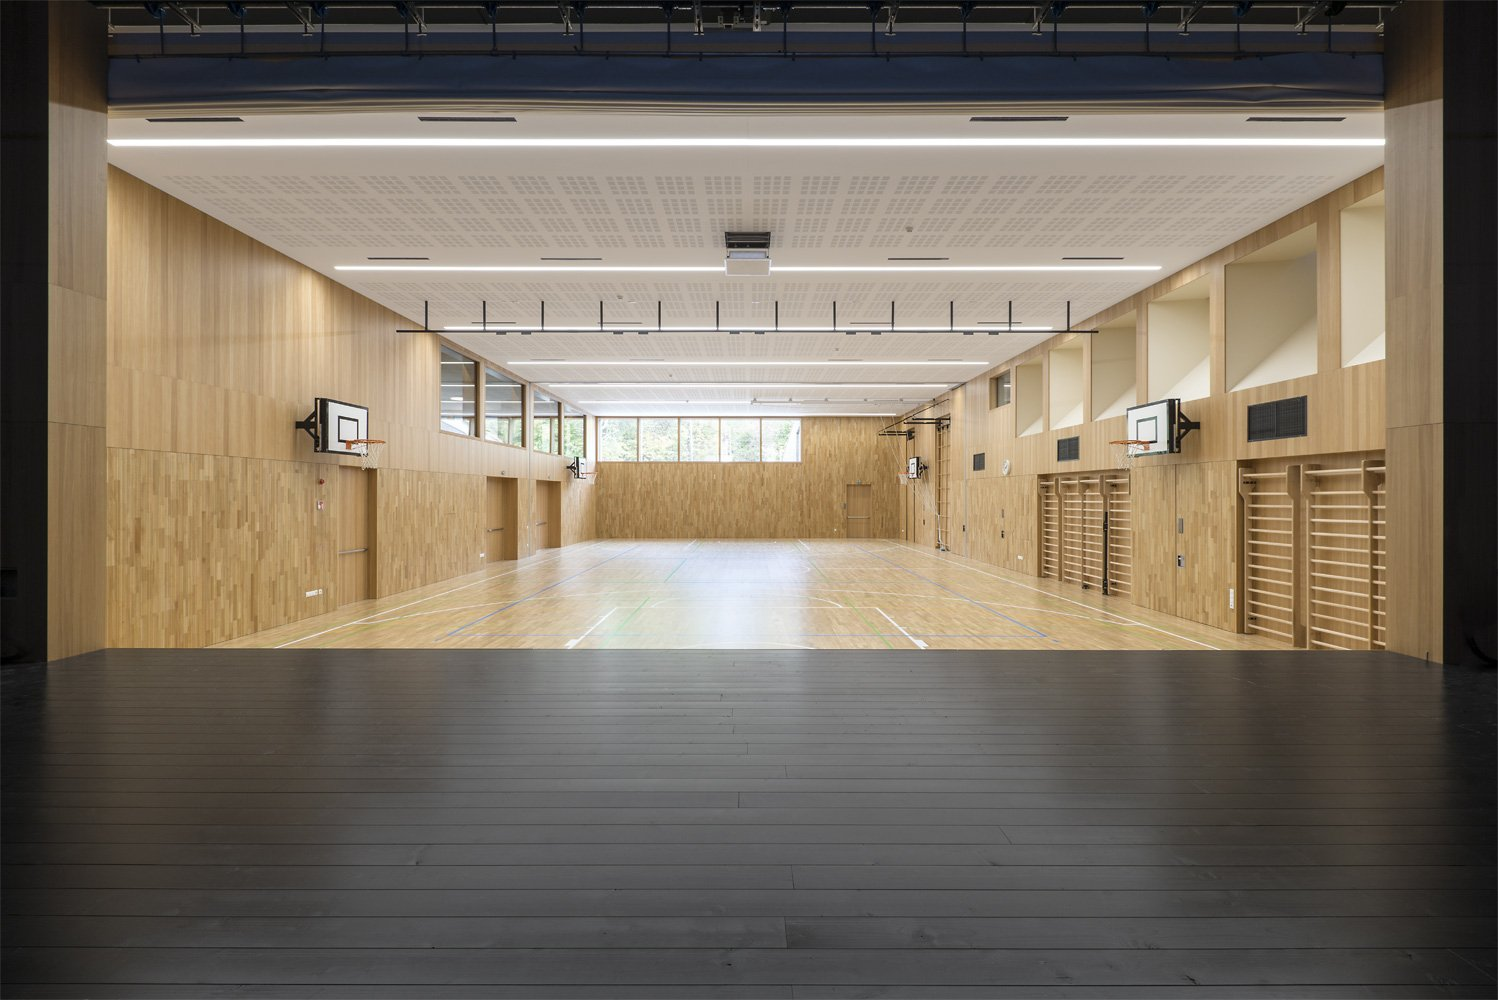 The stage frames the space of the gym / theatre / multiuse hall Oliver Jaist